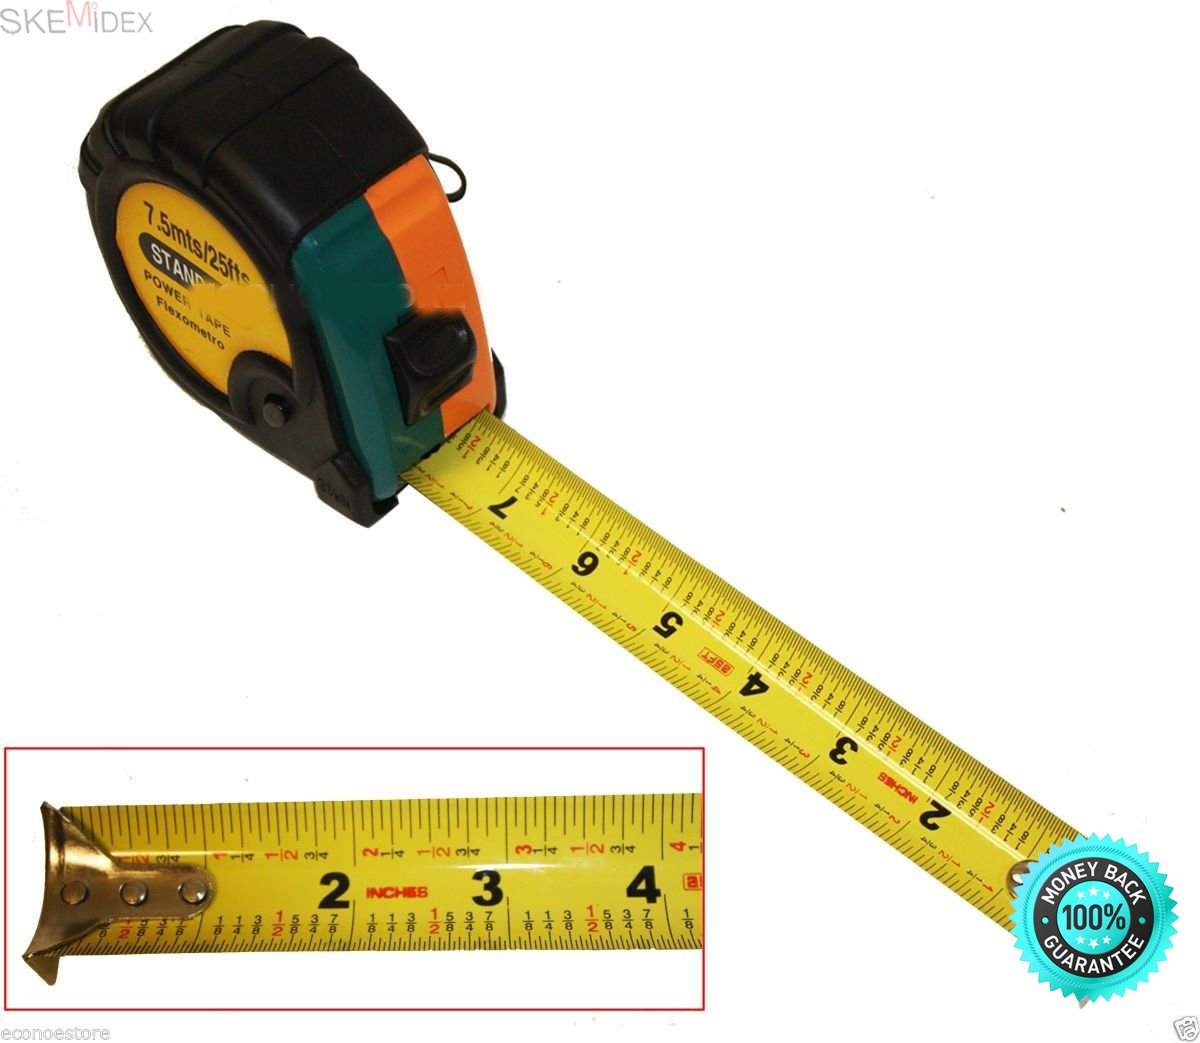 SKEMiDEX---25 Ft STANDARD POWERTAPE FLEXOMETRO MEASURING TAPE BLACK RUBBERIZED COVER 25'. HAS LOCKING BUTTON TO HOLD METAL RULER IN PLACE. STRAP FOR EASY CARRYING/HOOKING ONTO A BELT/LATCH